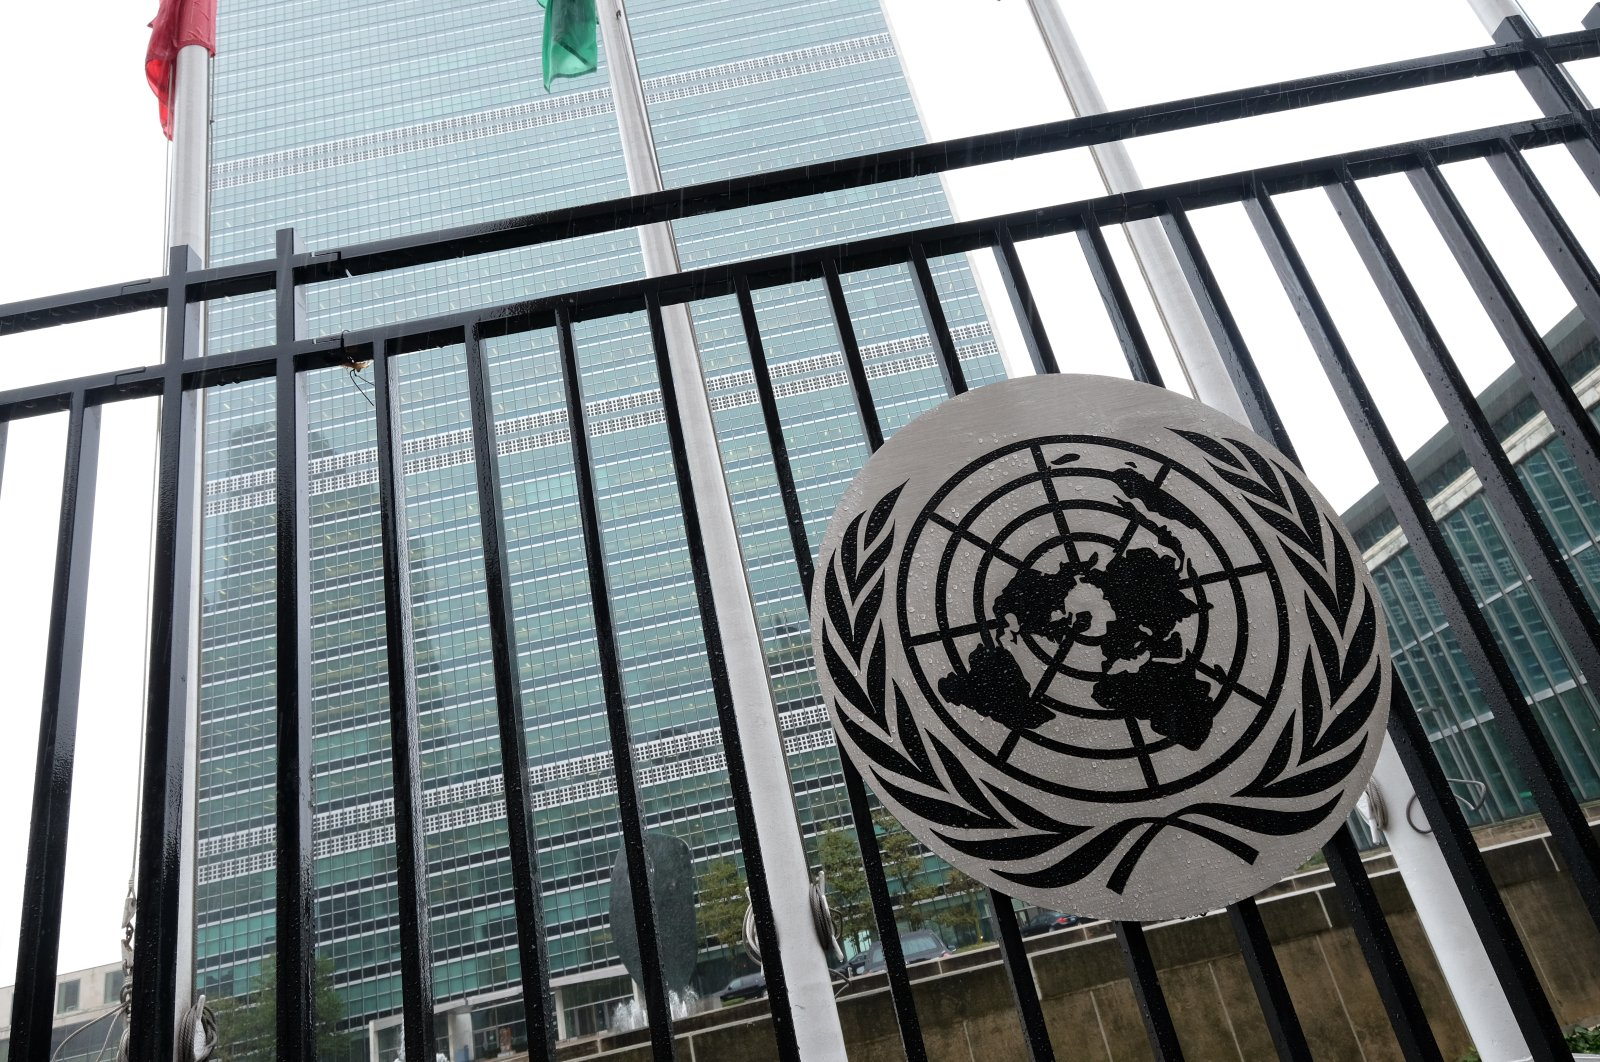 The building of the headquarters of the United Nations in New York City, New York, U.S., Oct. 21, 2016. (Shutterstock Photo)